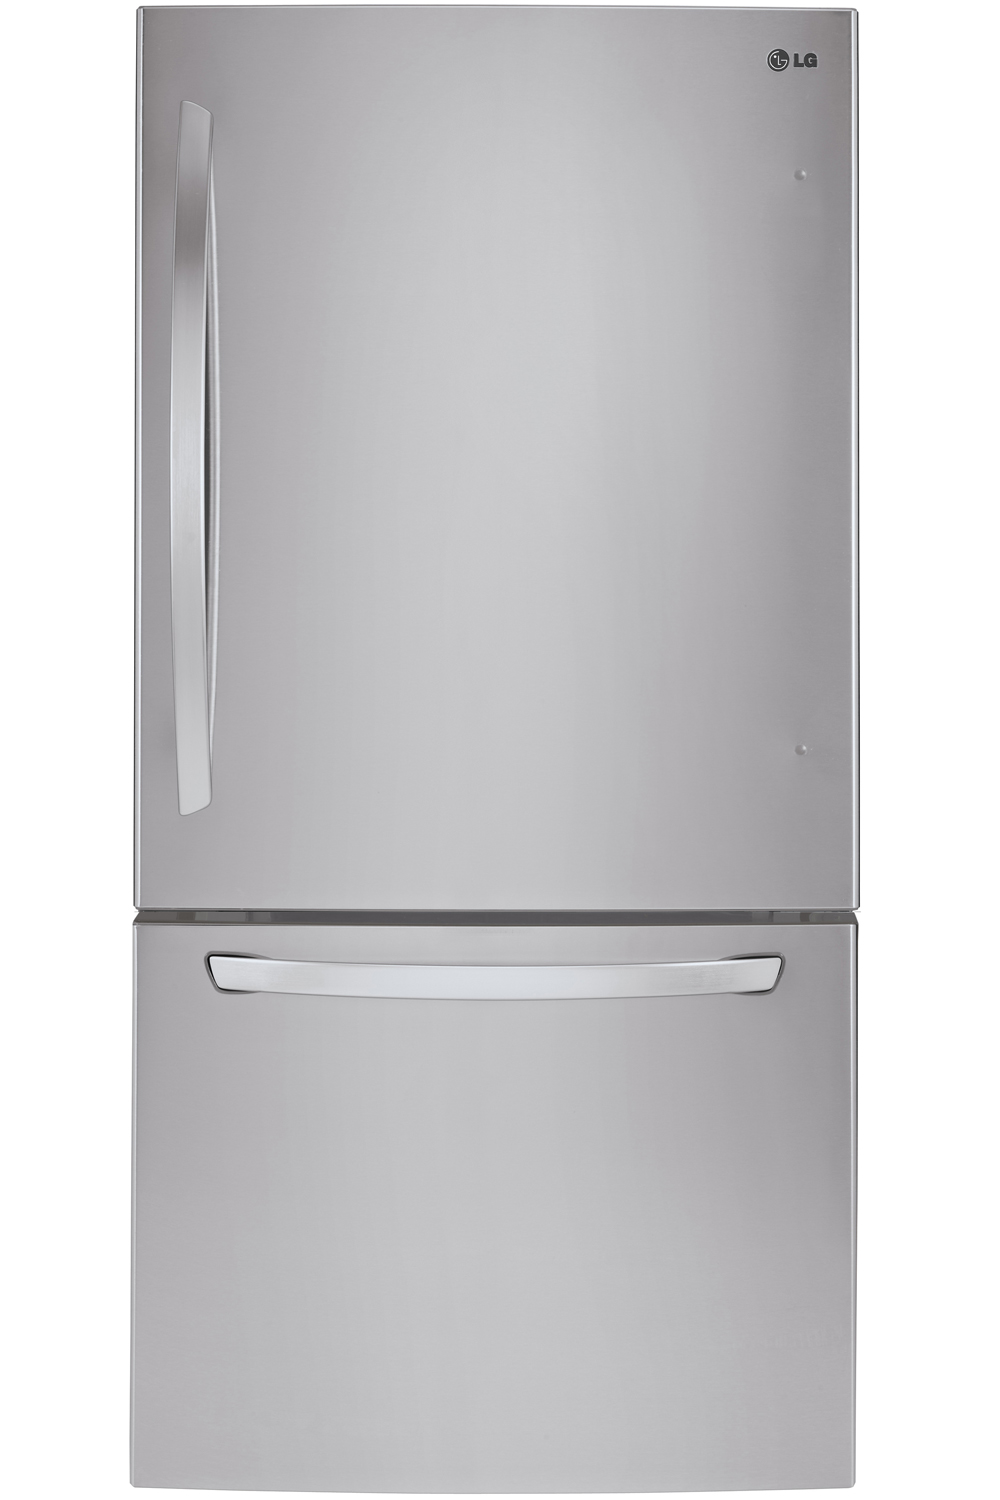 Image Result For Where Are Lg Refrigerators Made